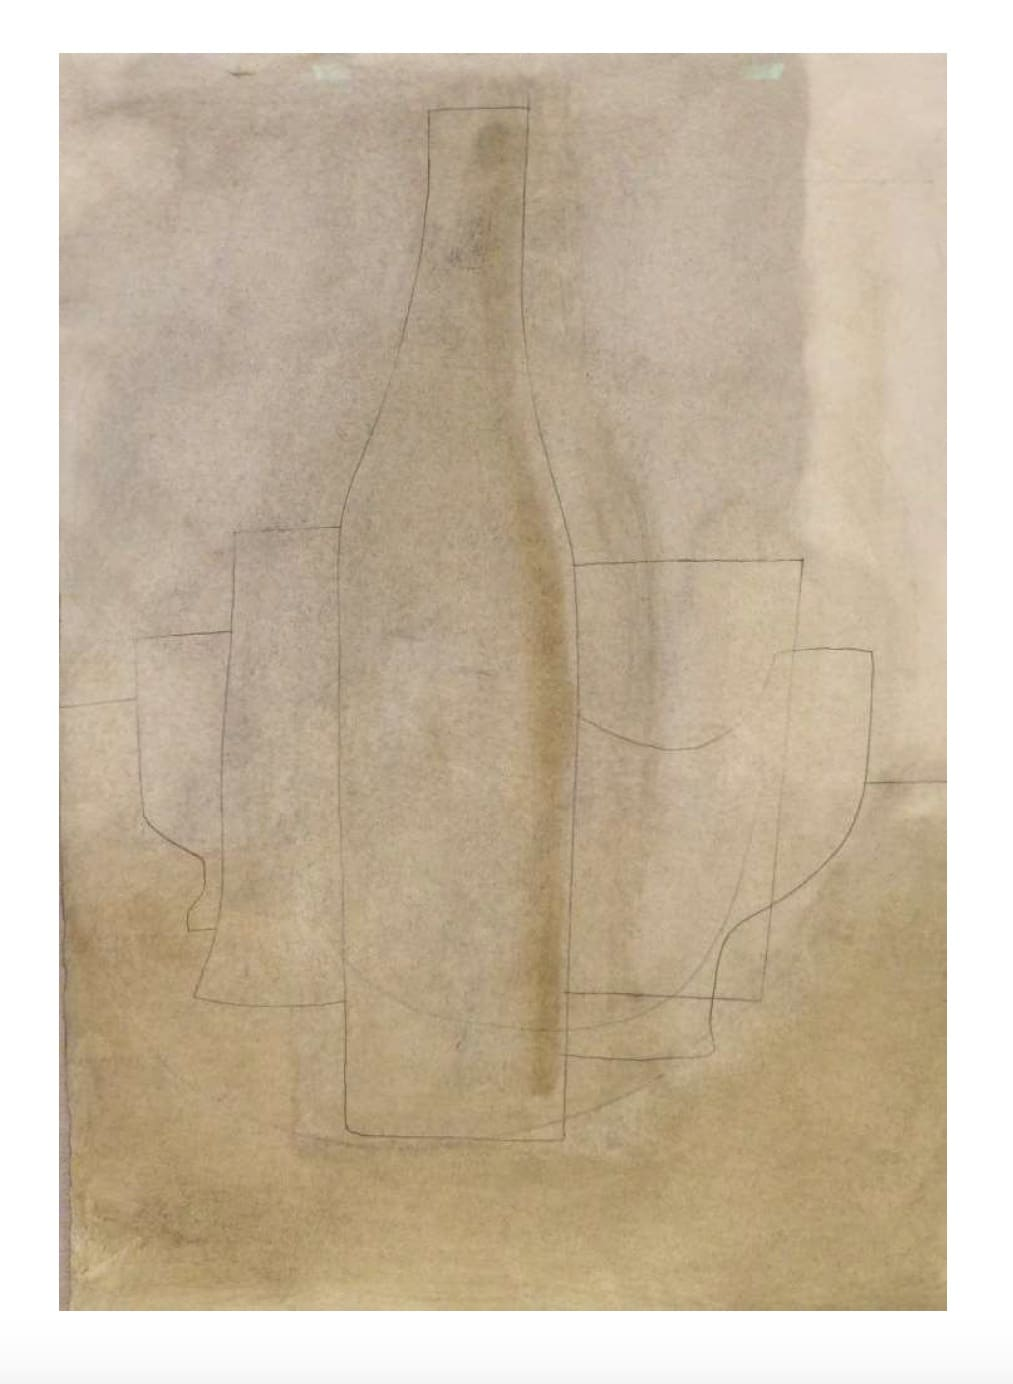 Ben Nicholson, 1972 (Still life with bottle), 1972